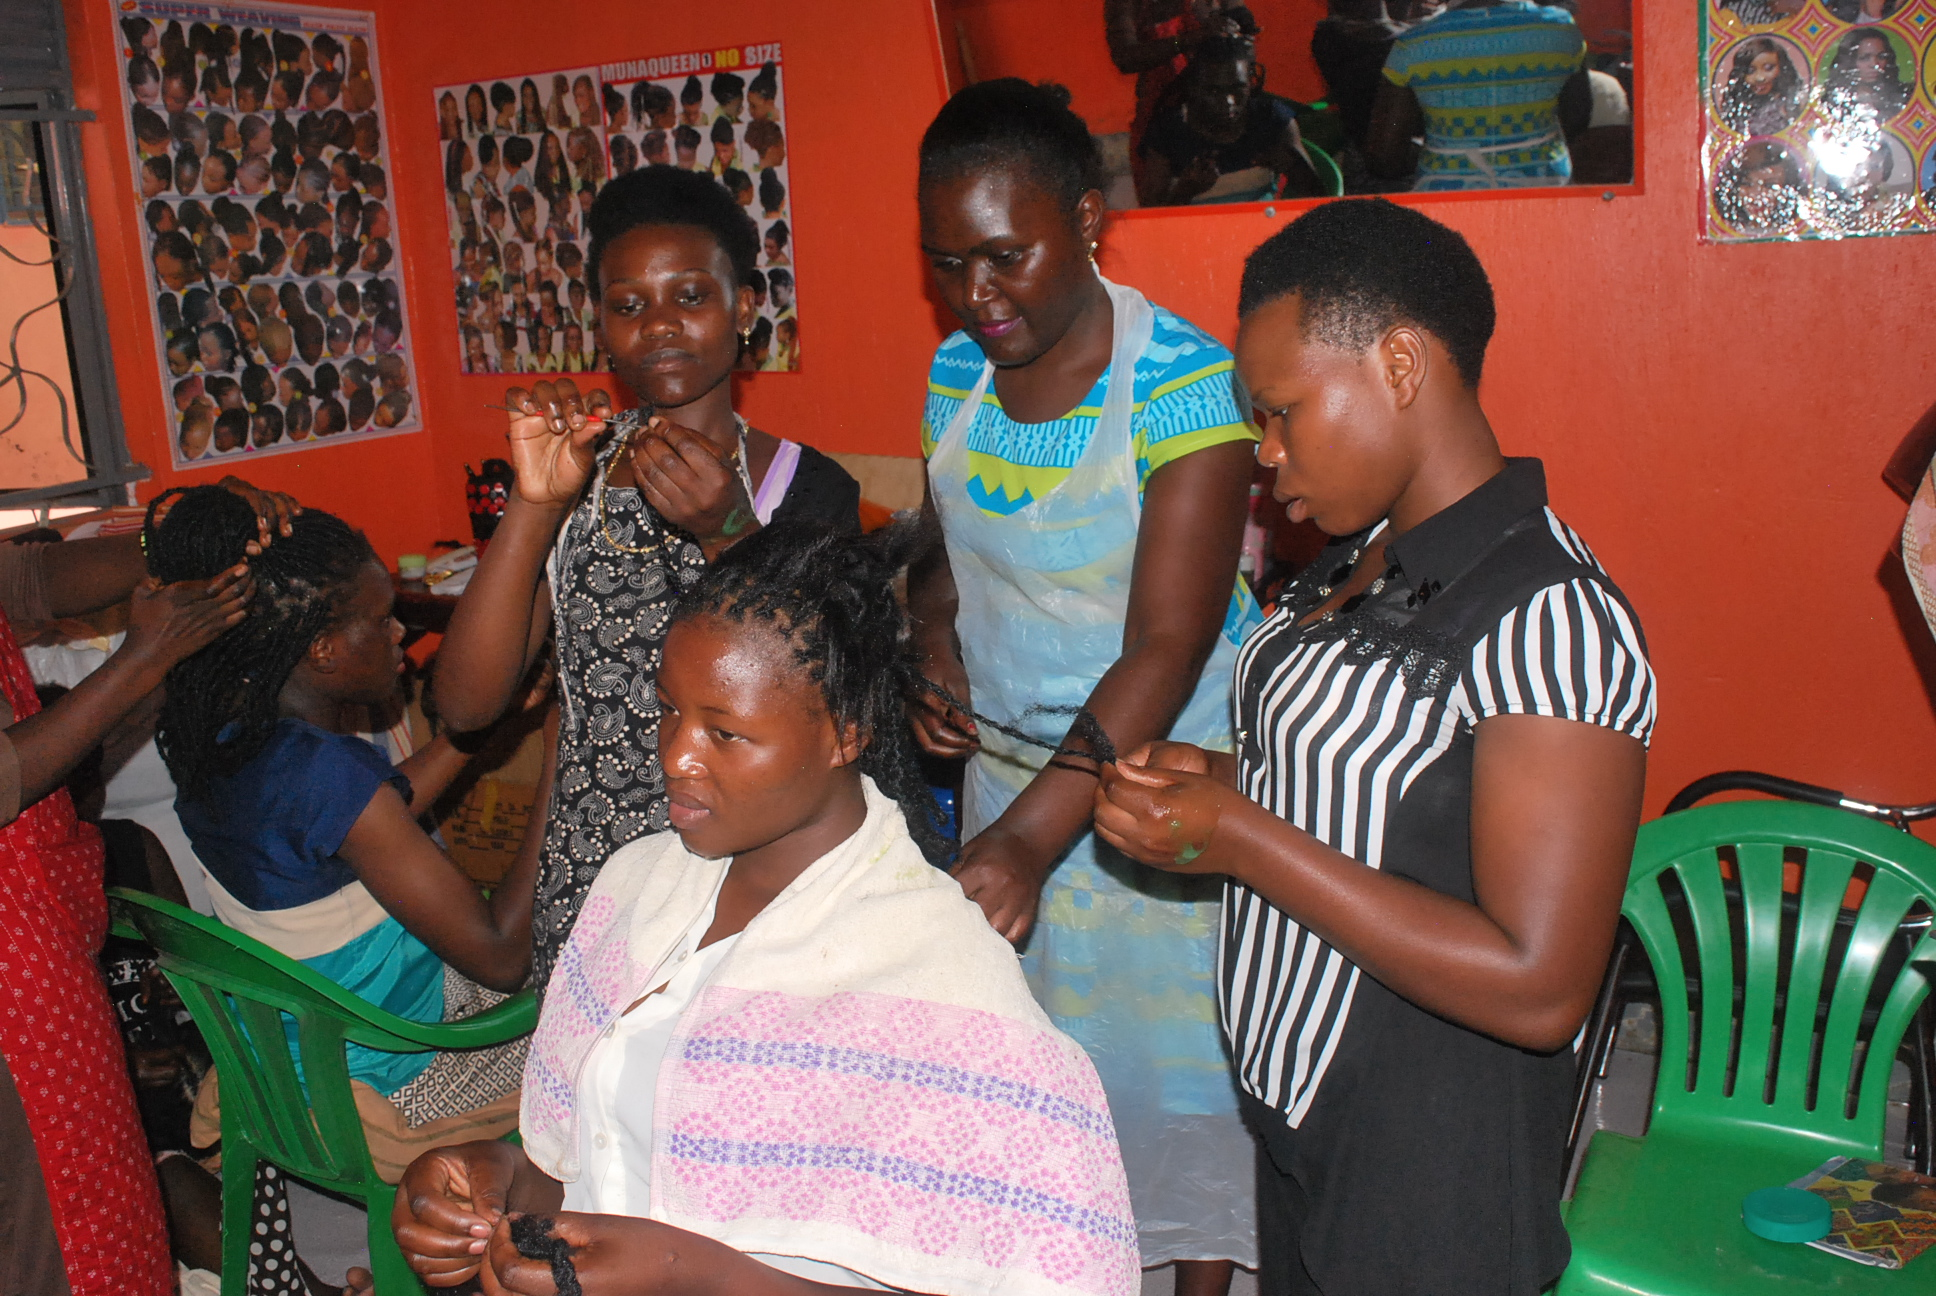 Hairdressing is one of the technical skills taught to the girls in Katanga under the Girl Care Program